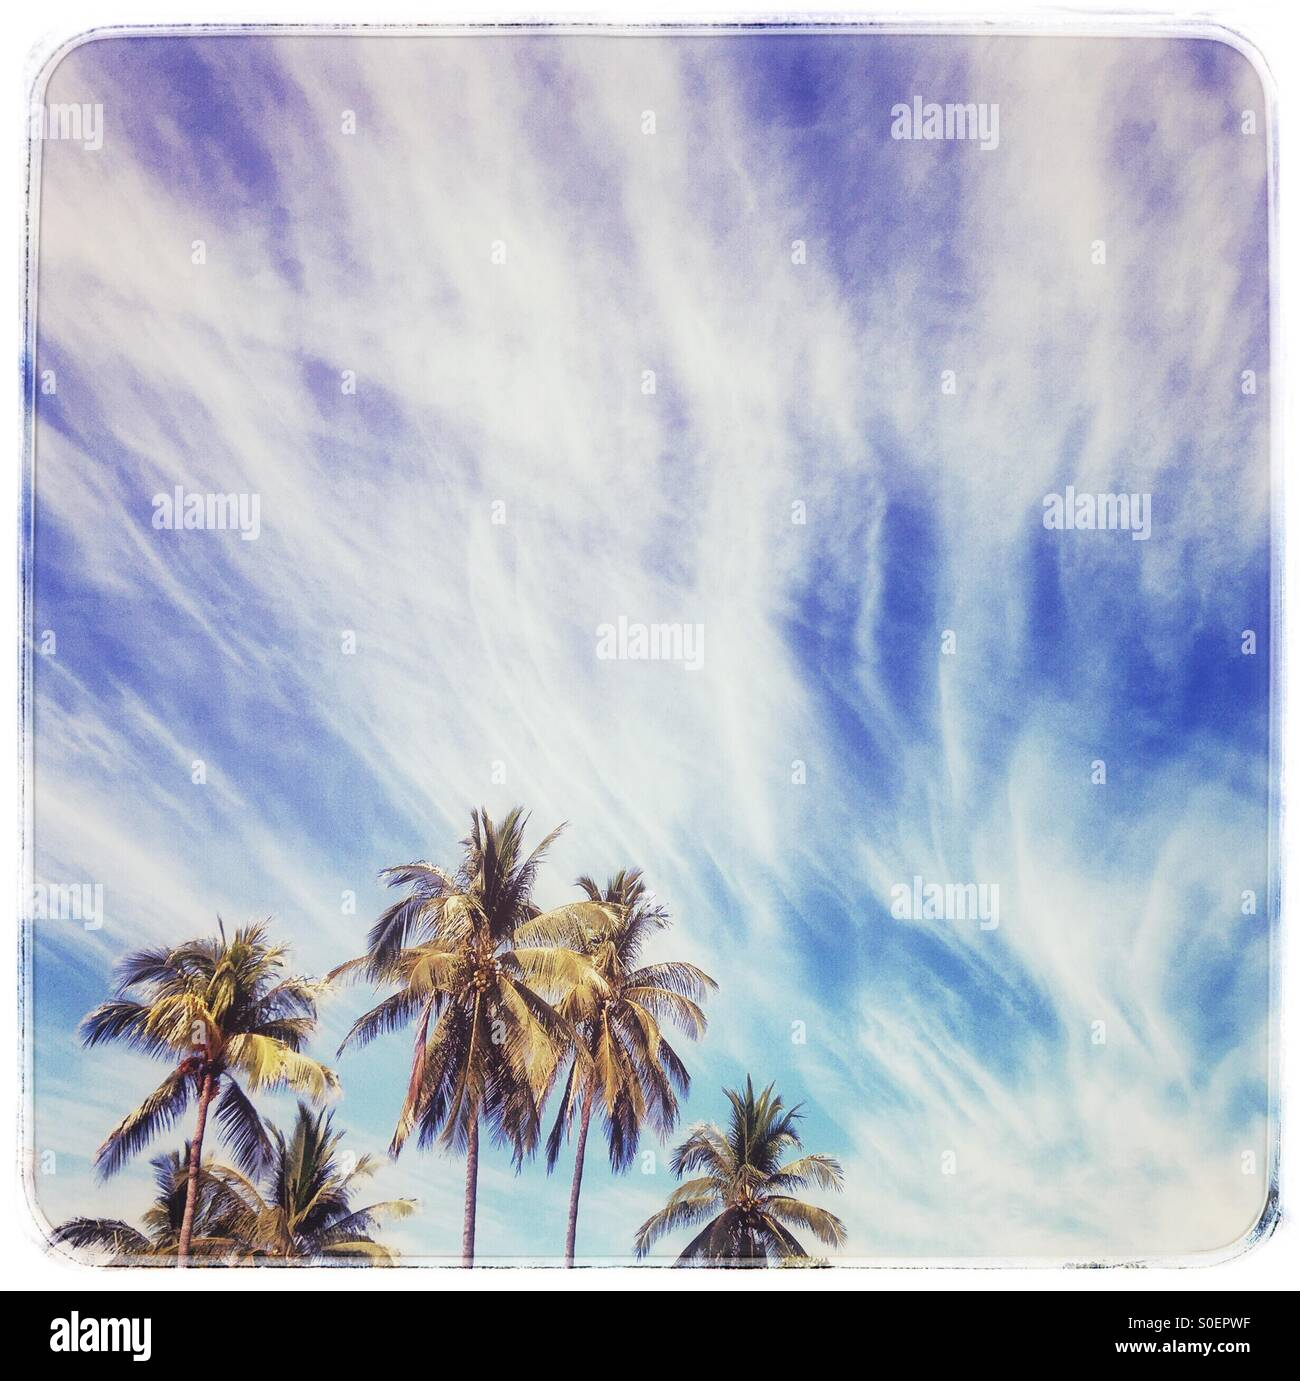 Palm trees reach upward toward a dreamy and beautiful sky filled with swirls of clouds. - Stock Image